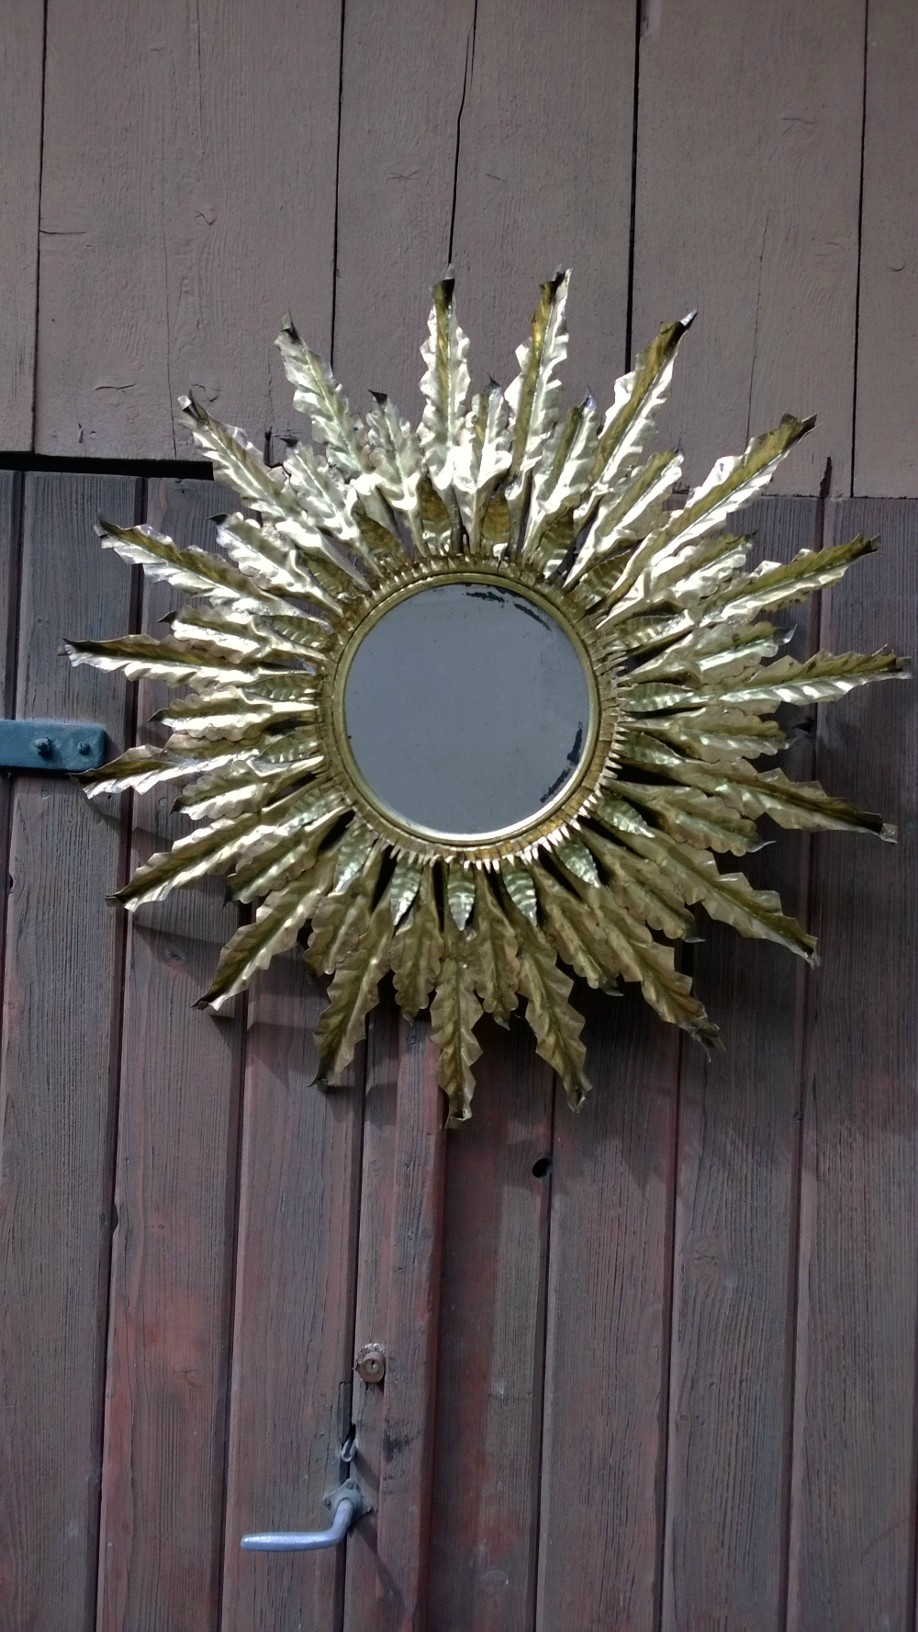 Grand miroir soleil en metal dor vintage indus what else for Grand miroir soleil